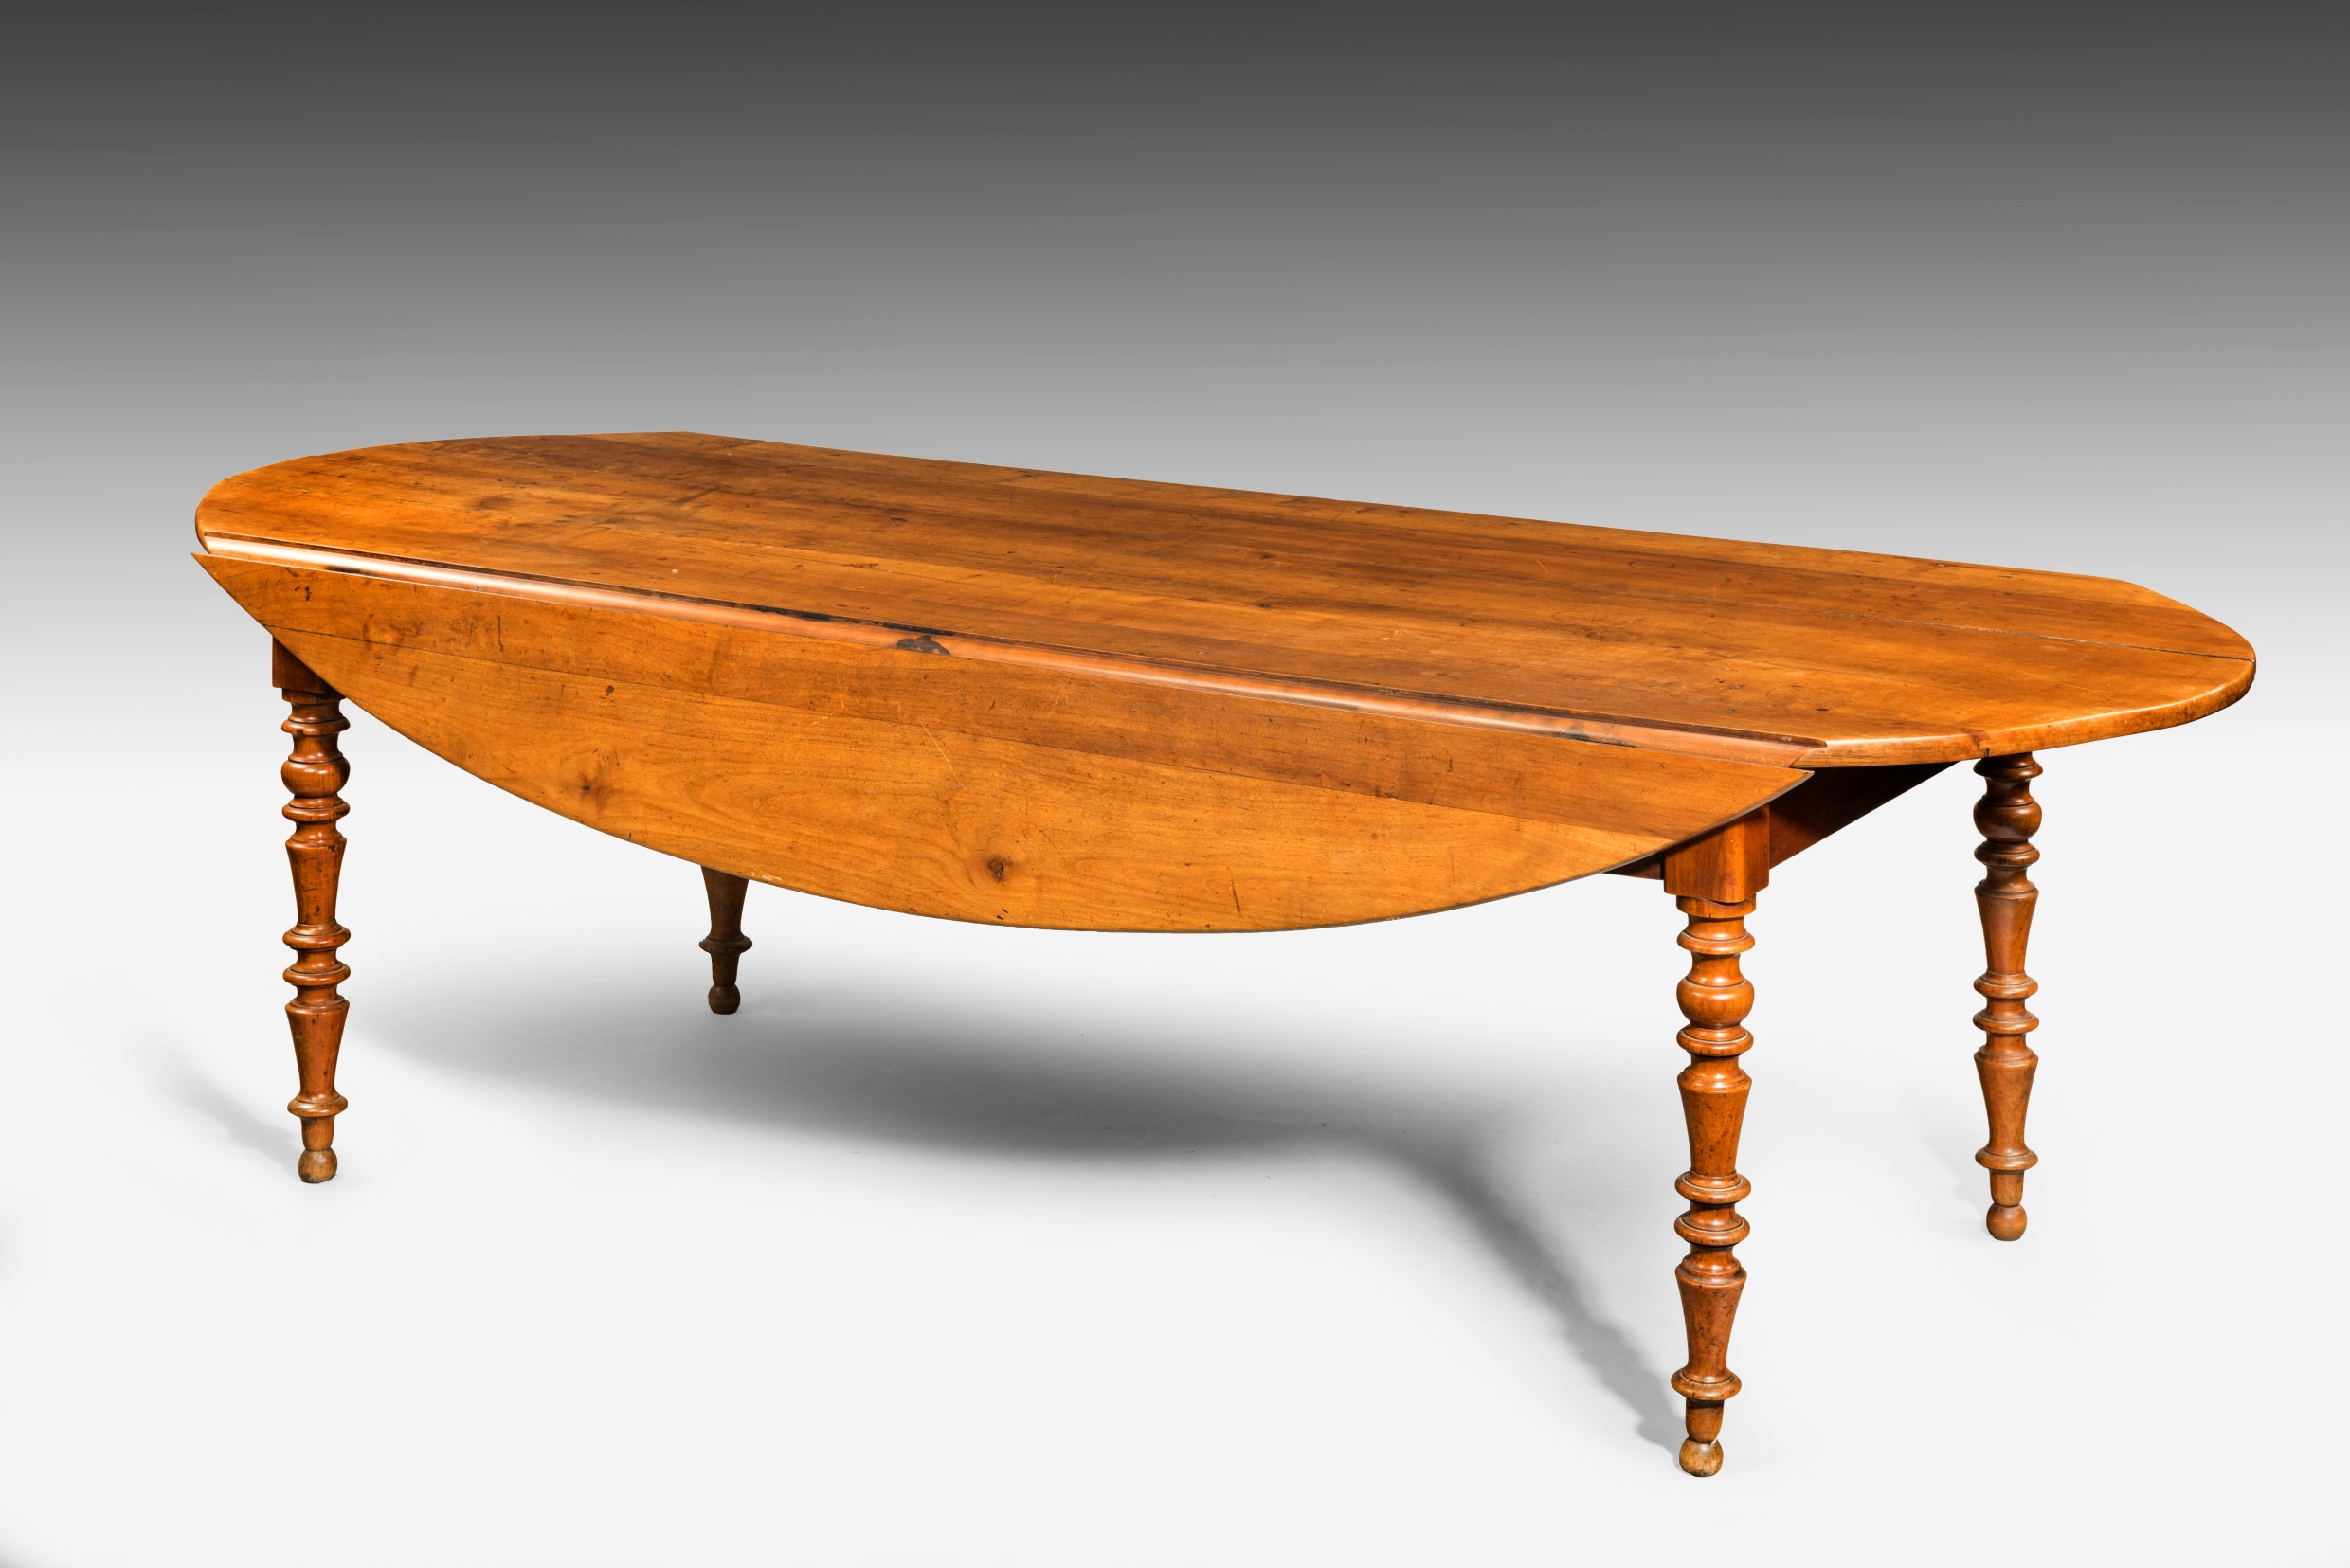 Antique French Oval Farm Table Summers Davis Antiques & Interiors